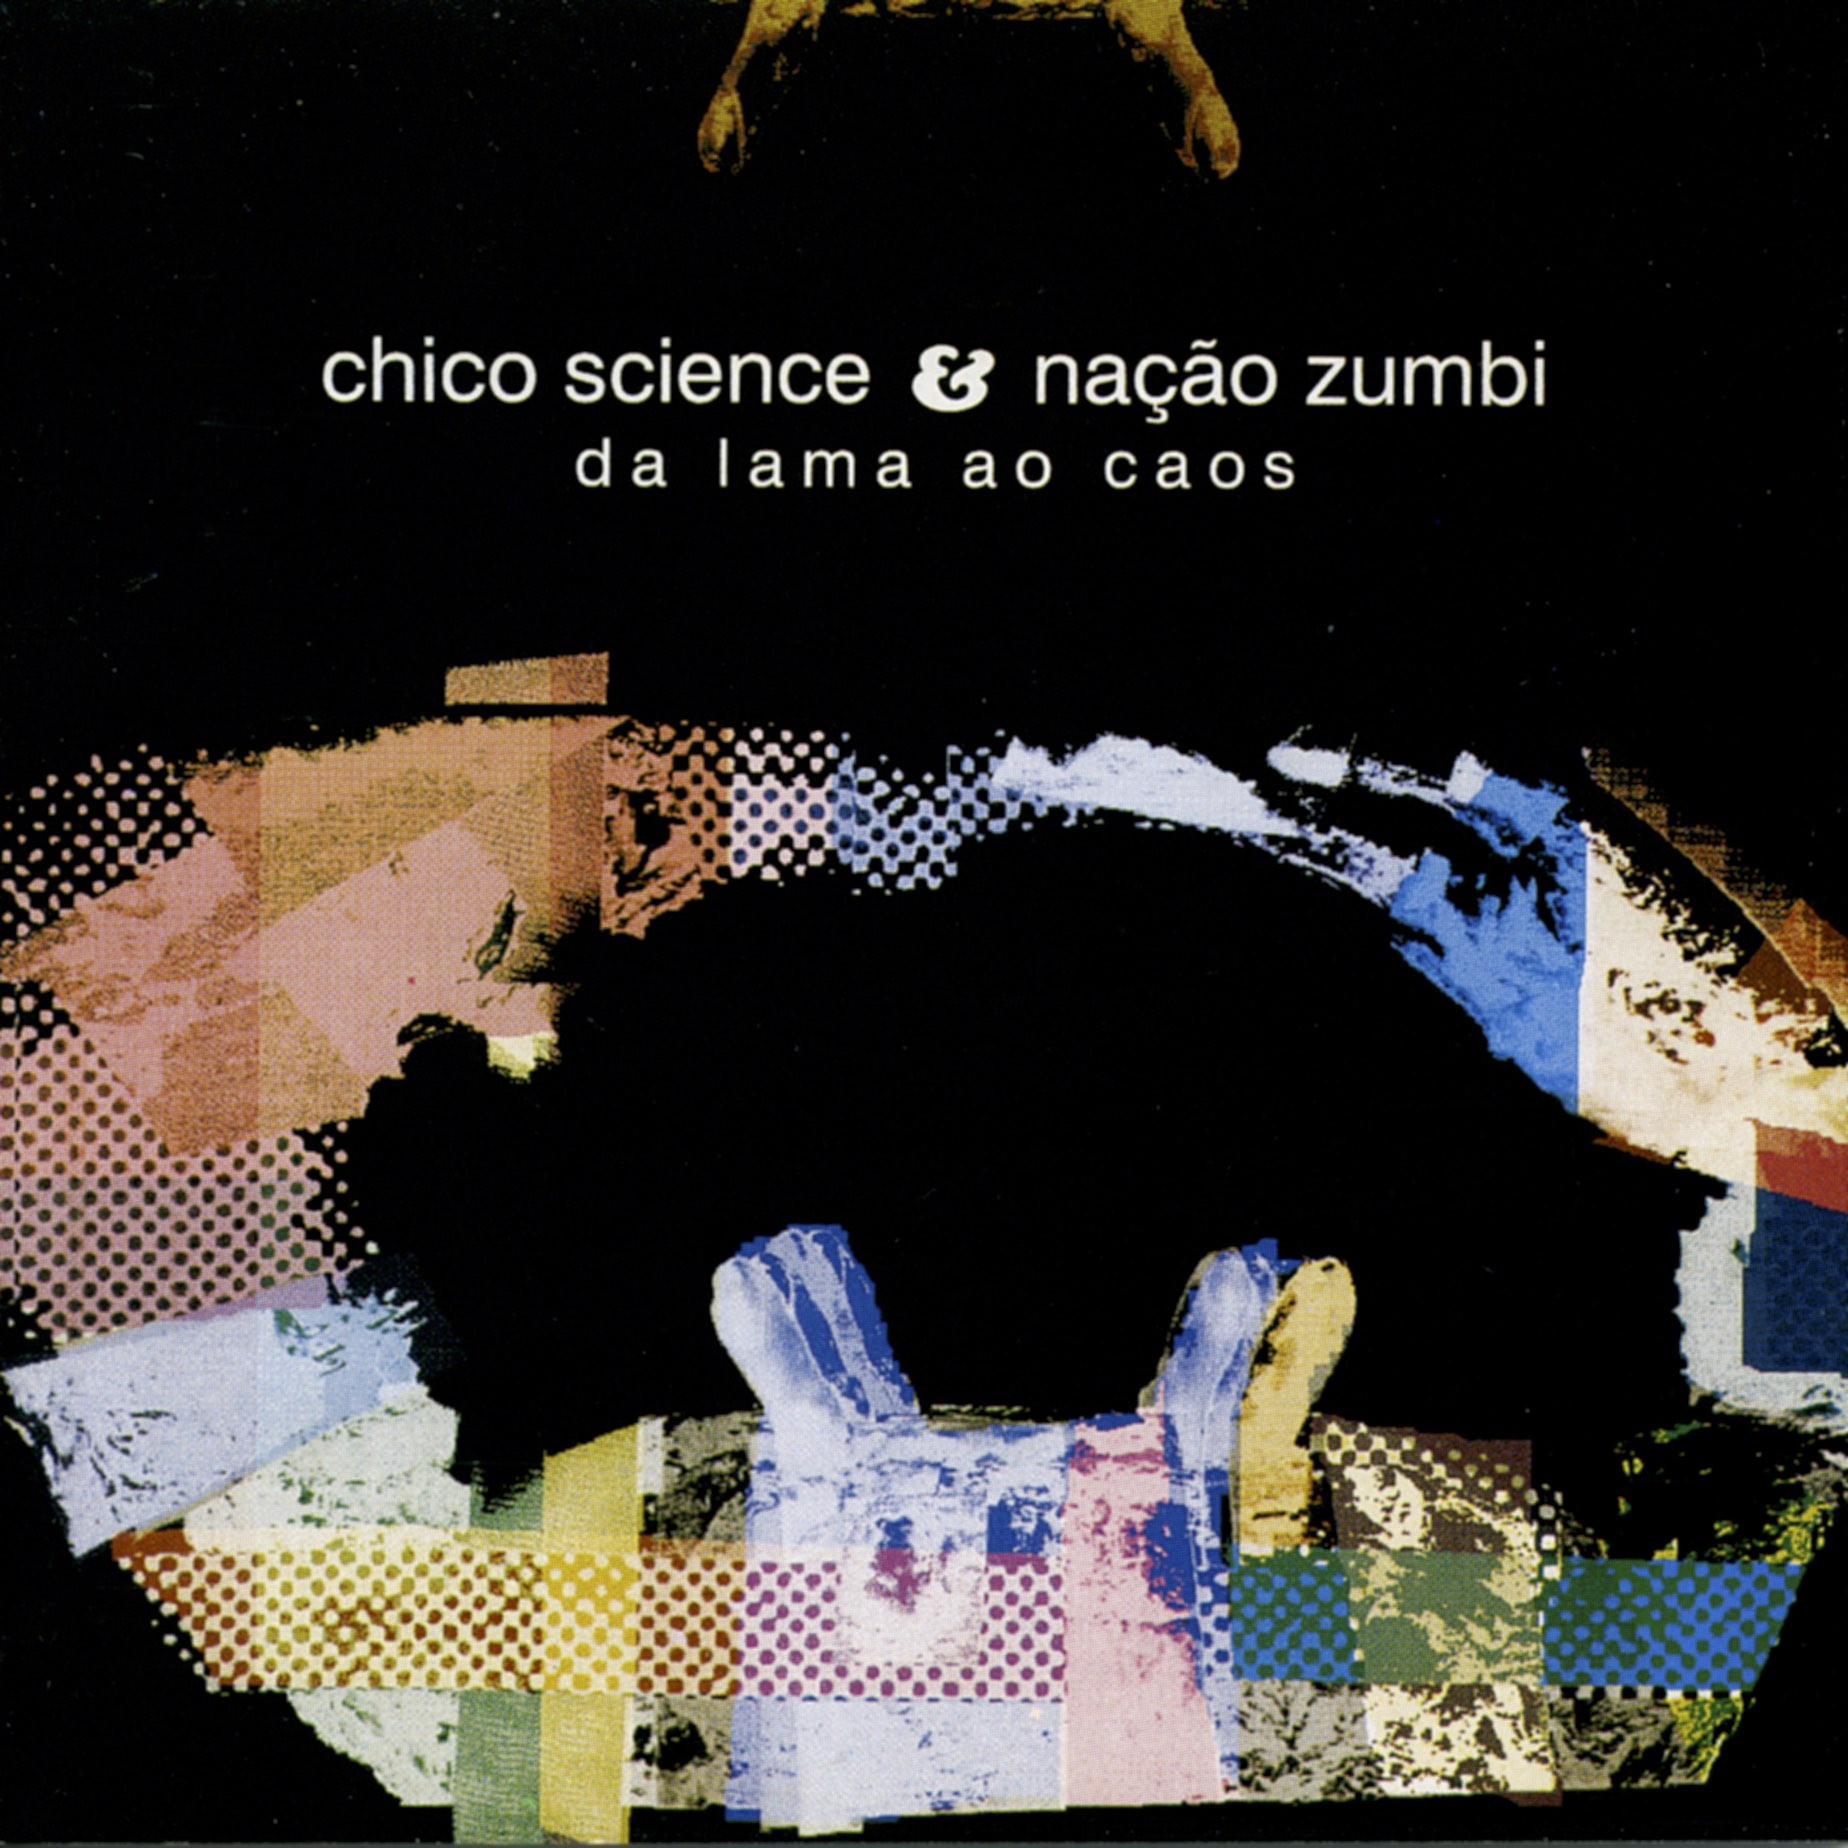 1994 - Chico Science